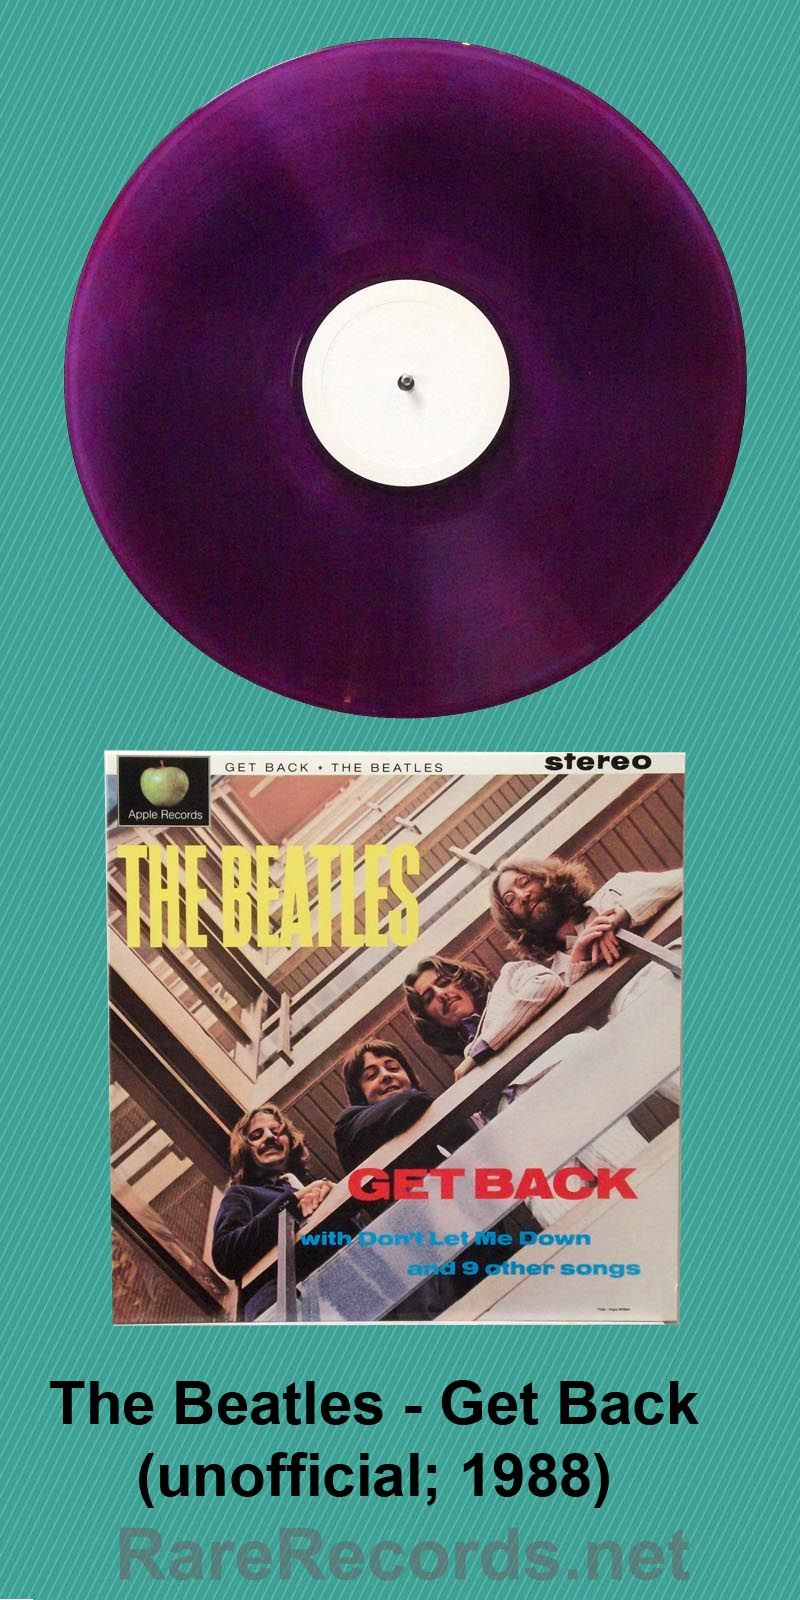 Unauthorized Colored Vinyl Limited Edition Pressing Of The Beatles Unreleased Get Back Lp Which Was Later Released In A The Beatles Vinyl Records Rare Records